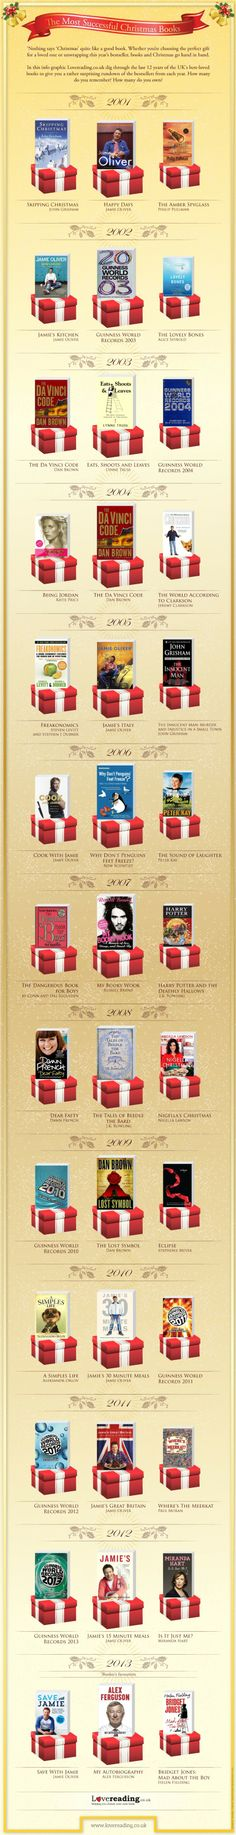 Bestselling Christmas books infographic